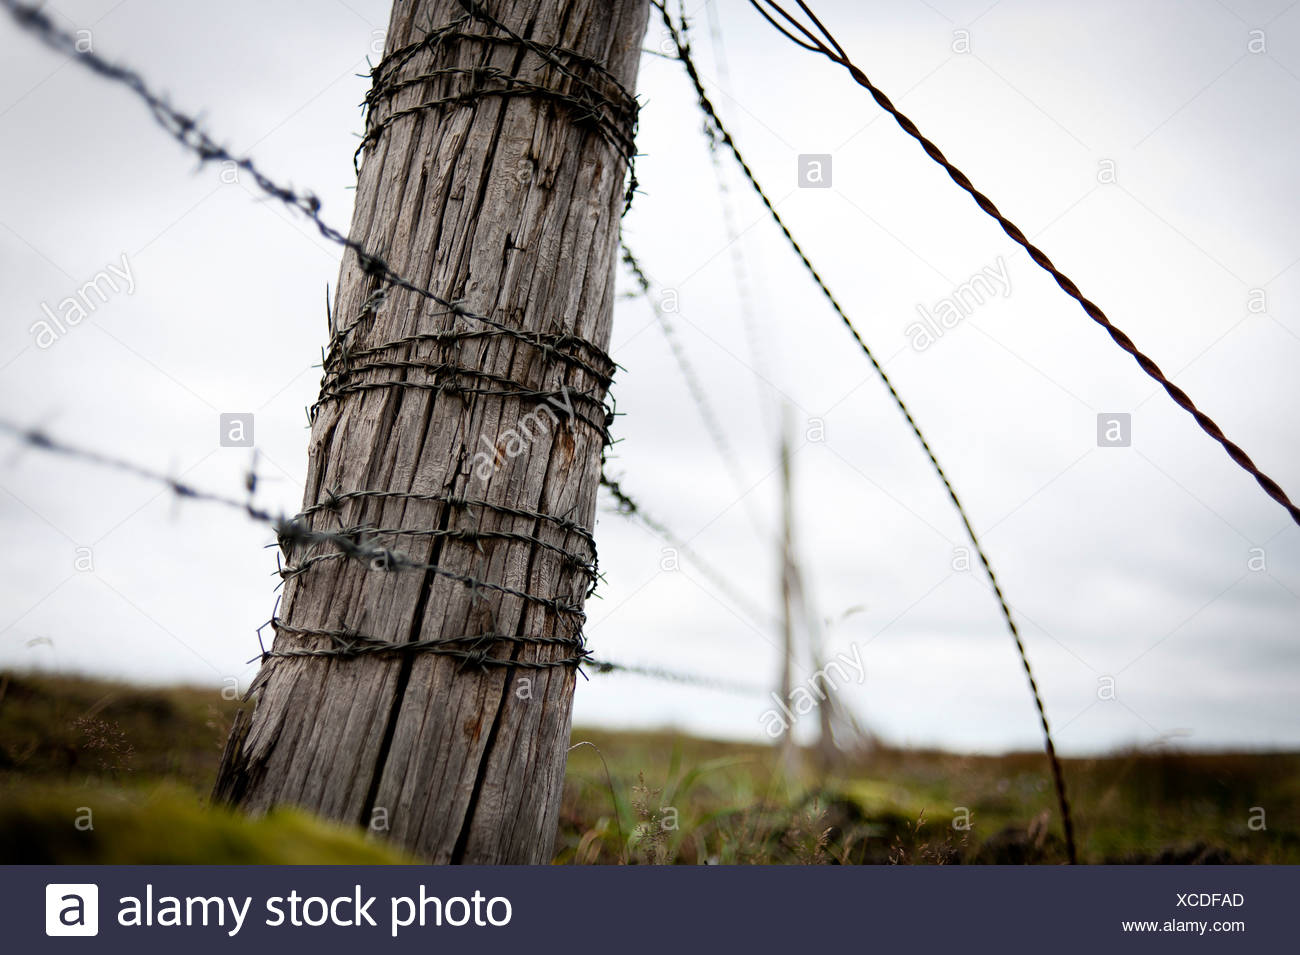 Wire Fencing Post Stock Photos & Wire Fencing Post Stock Images - Alamy